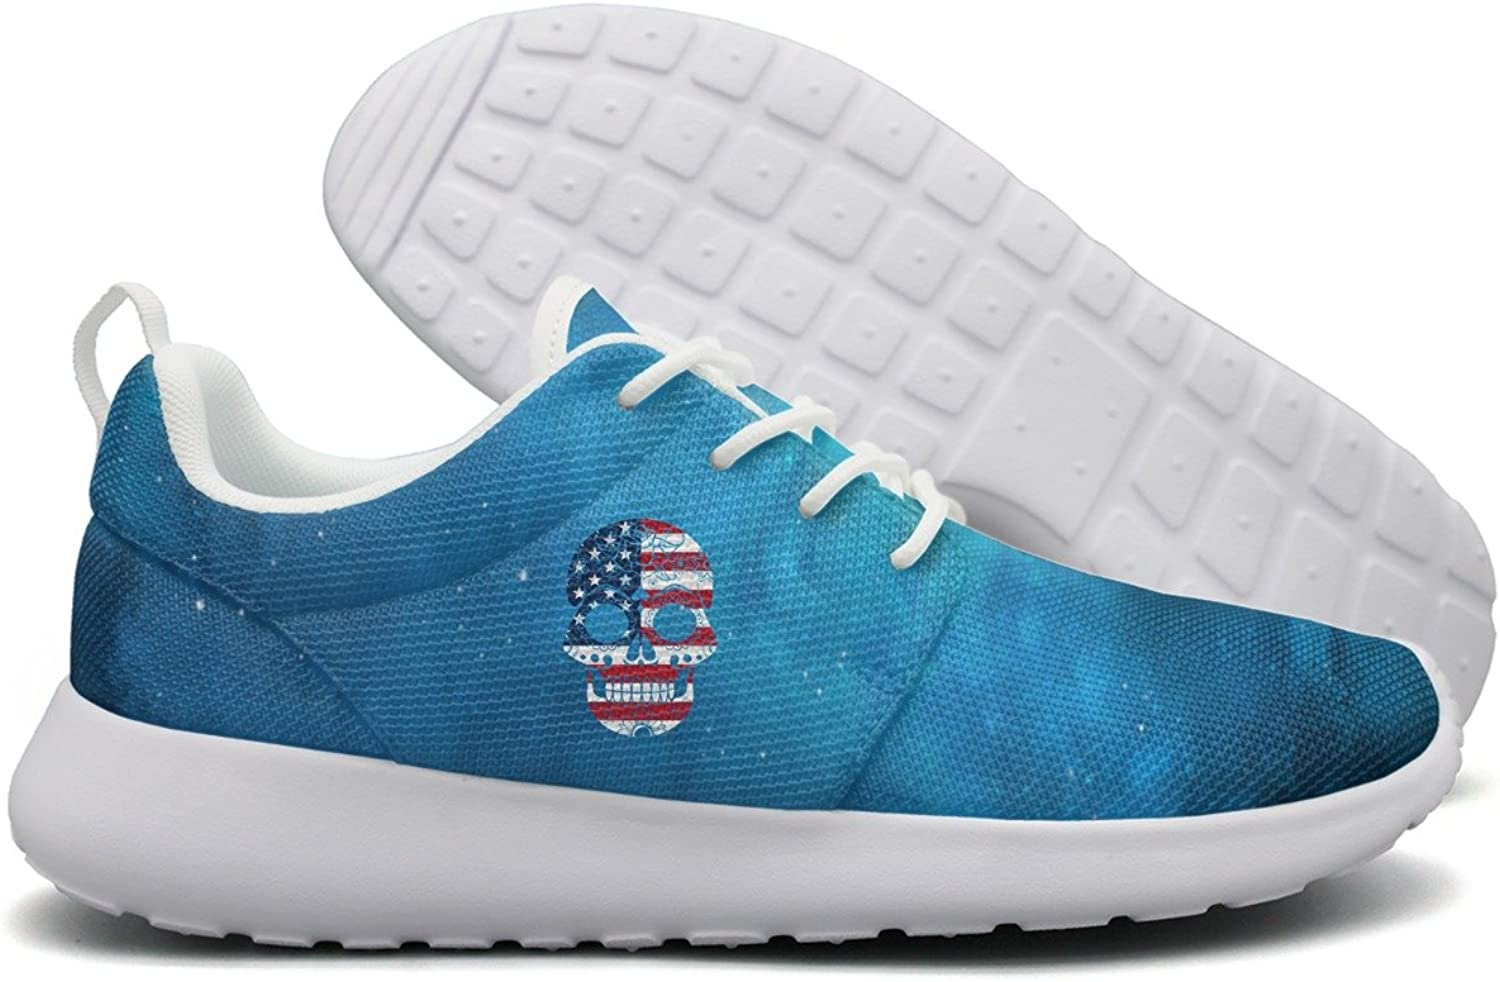 SKULL-USA Skull American Flag Flex Mesh Lightweight shoes